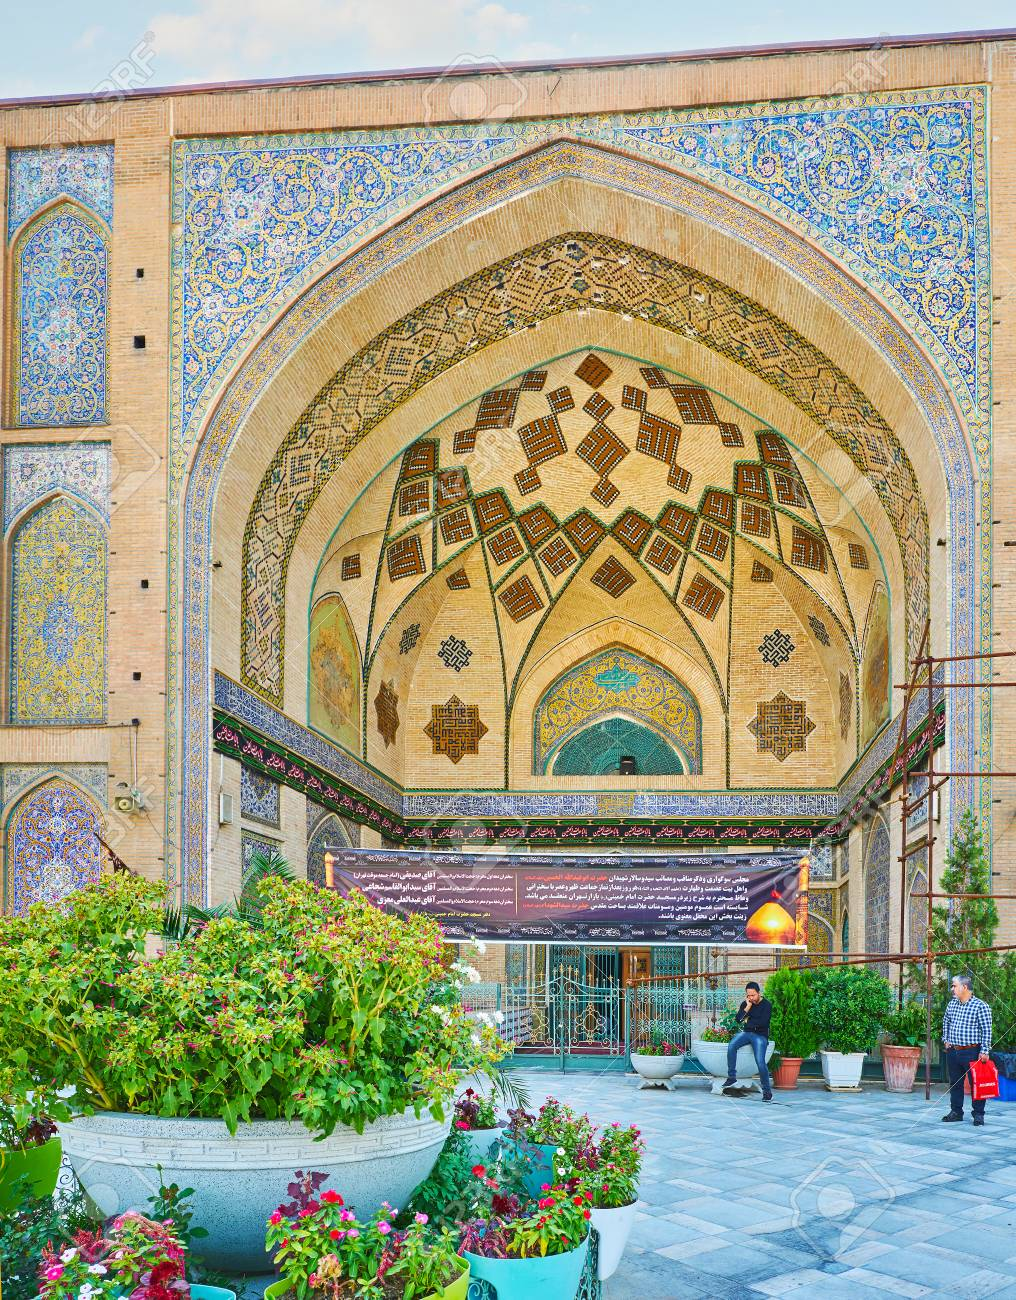 Tehran iran october 11 2017 the facade of shahs mosque stock stock photo tehran iran october 11 2017 the facade of shahs mosque behind the beautiful flowers decorating its courtyard on october 11 in tehran izmirmasajfo